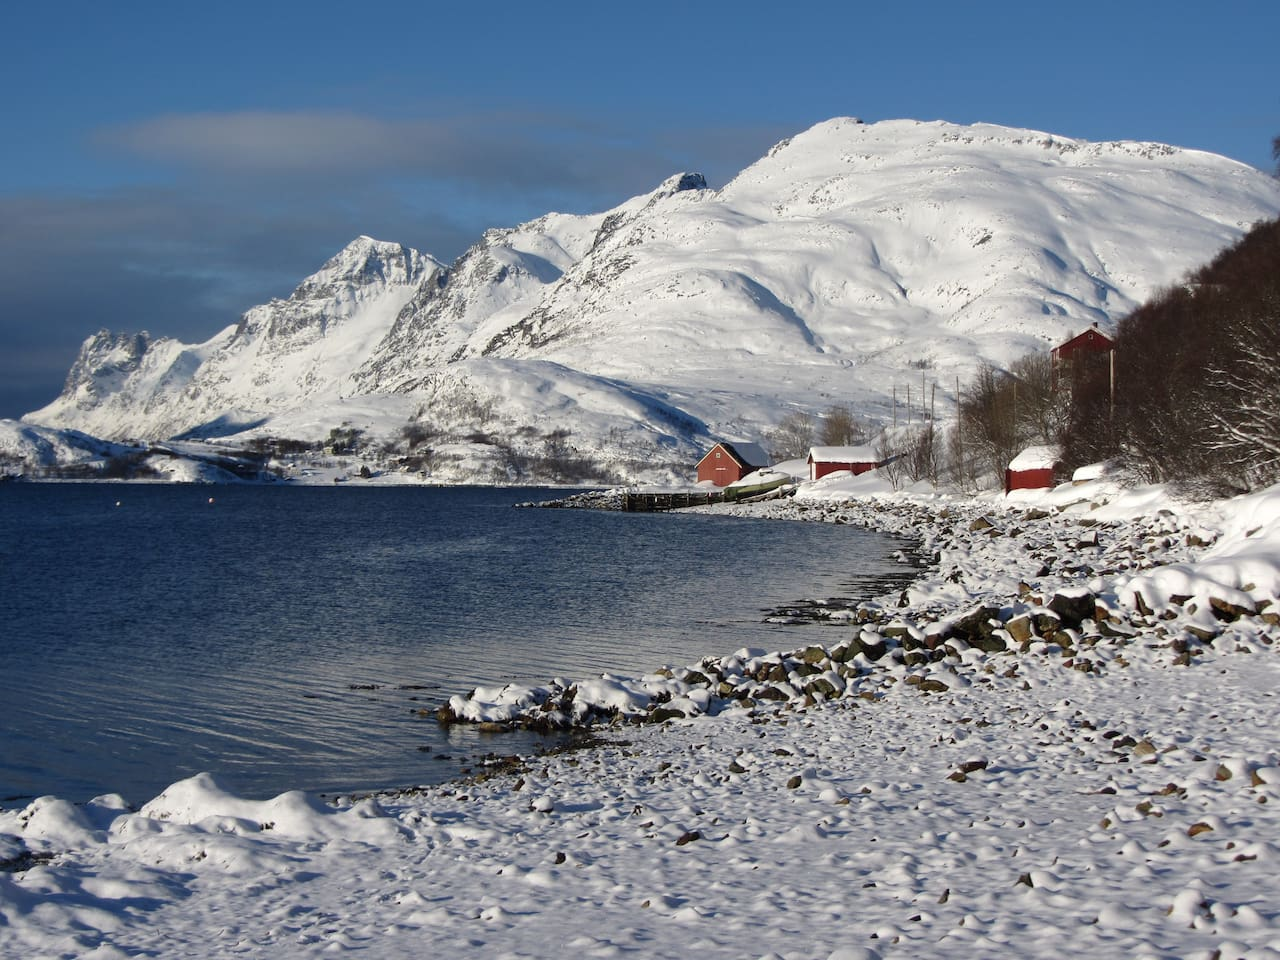 House and boathouse viewed from shore in late winter